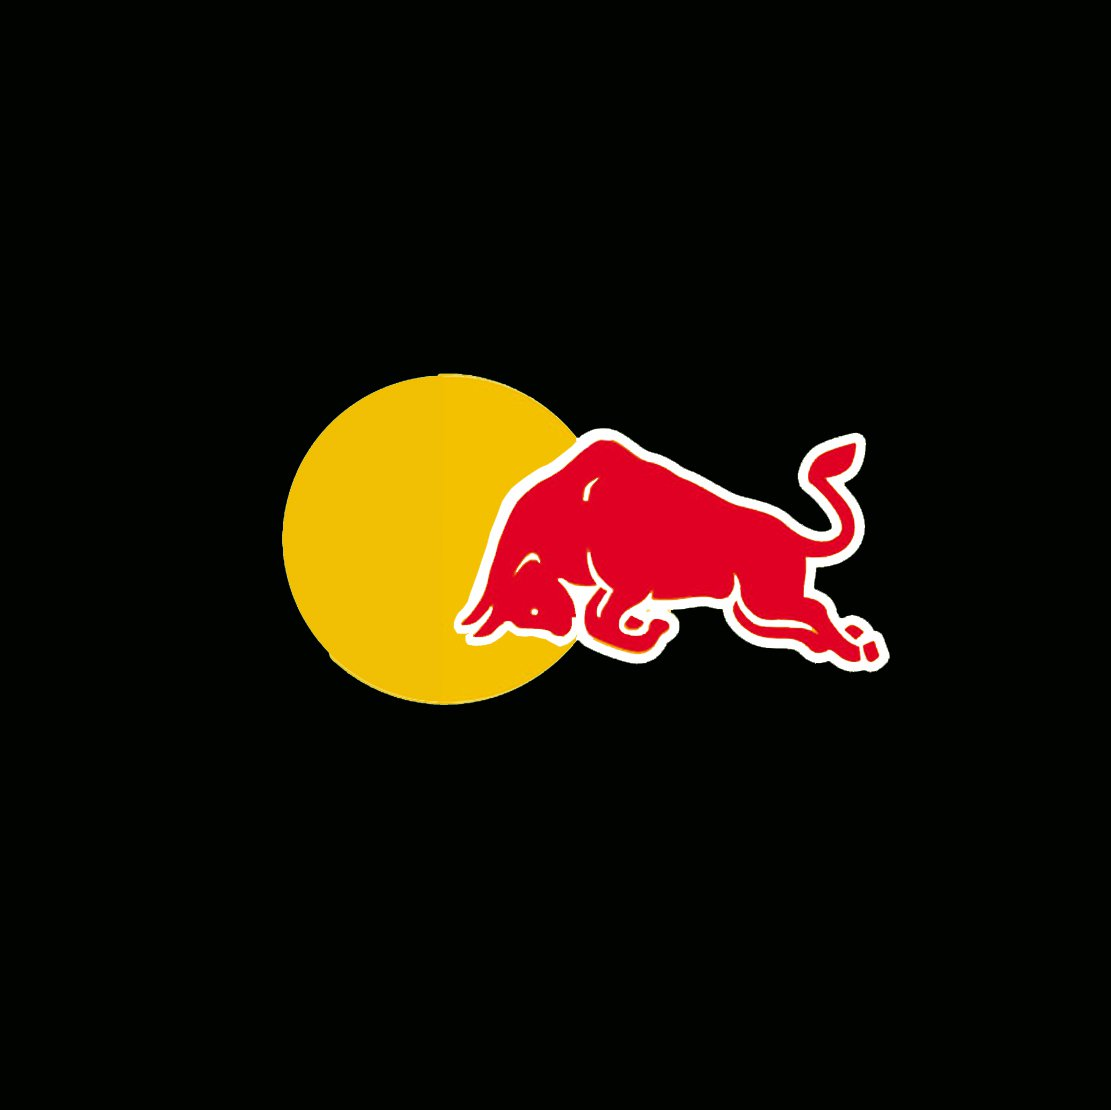 half sun red bull logo pictures newschoolerscom